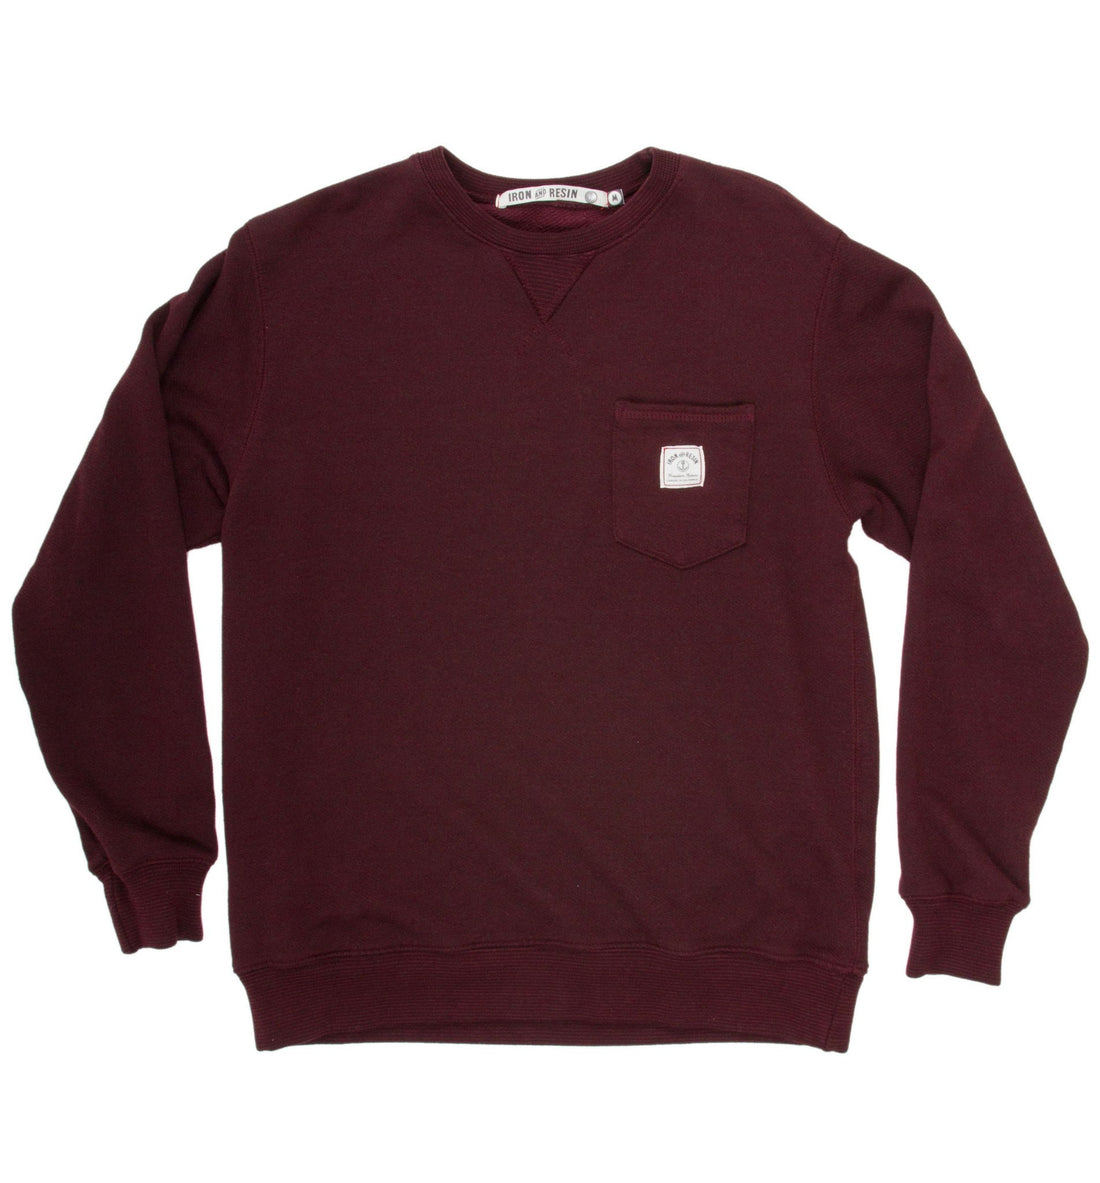 INR stocker crew - Apparel: Men's: Fleece - Iron and Resin